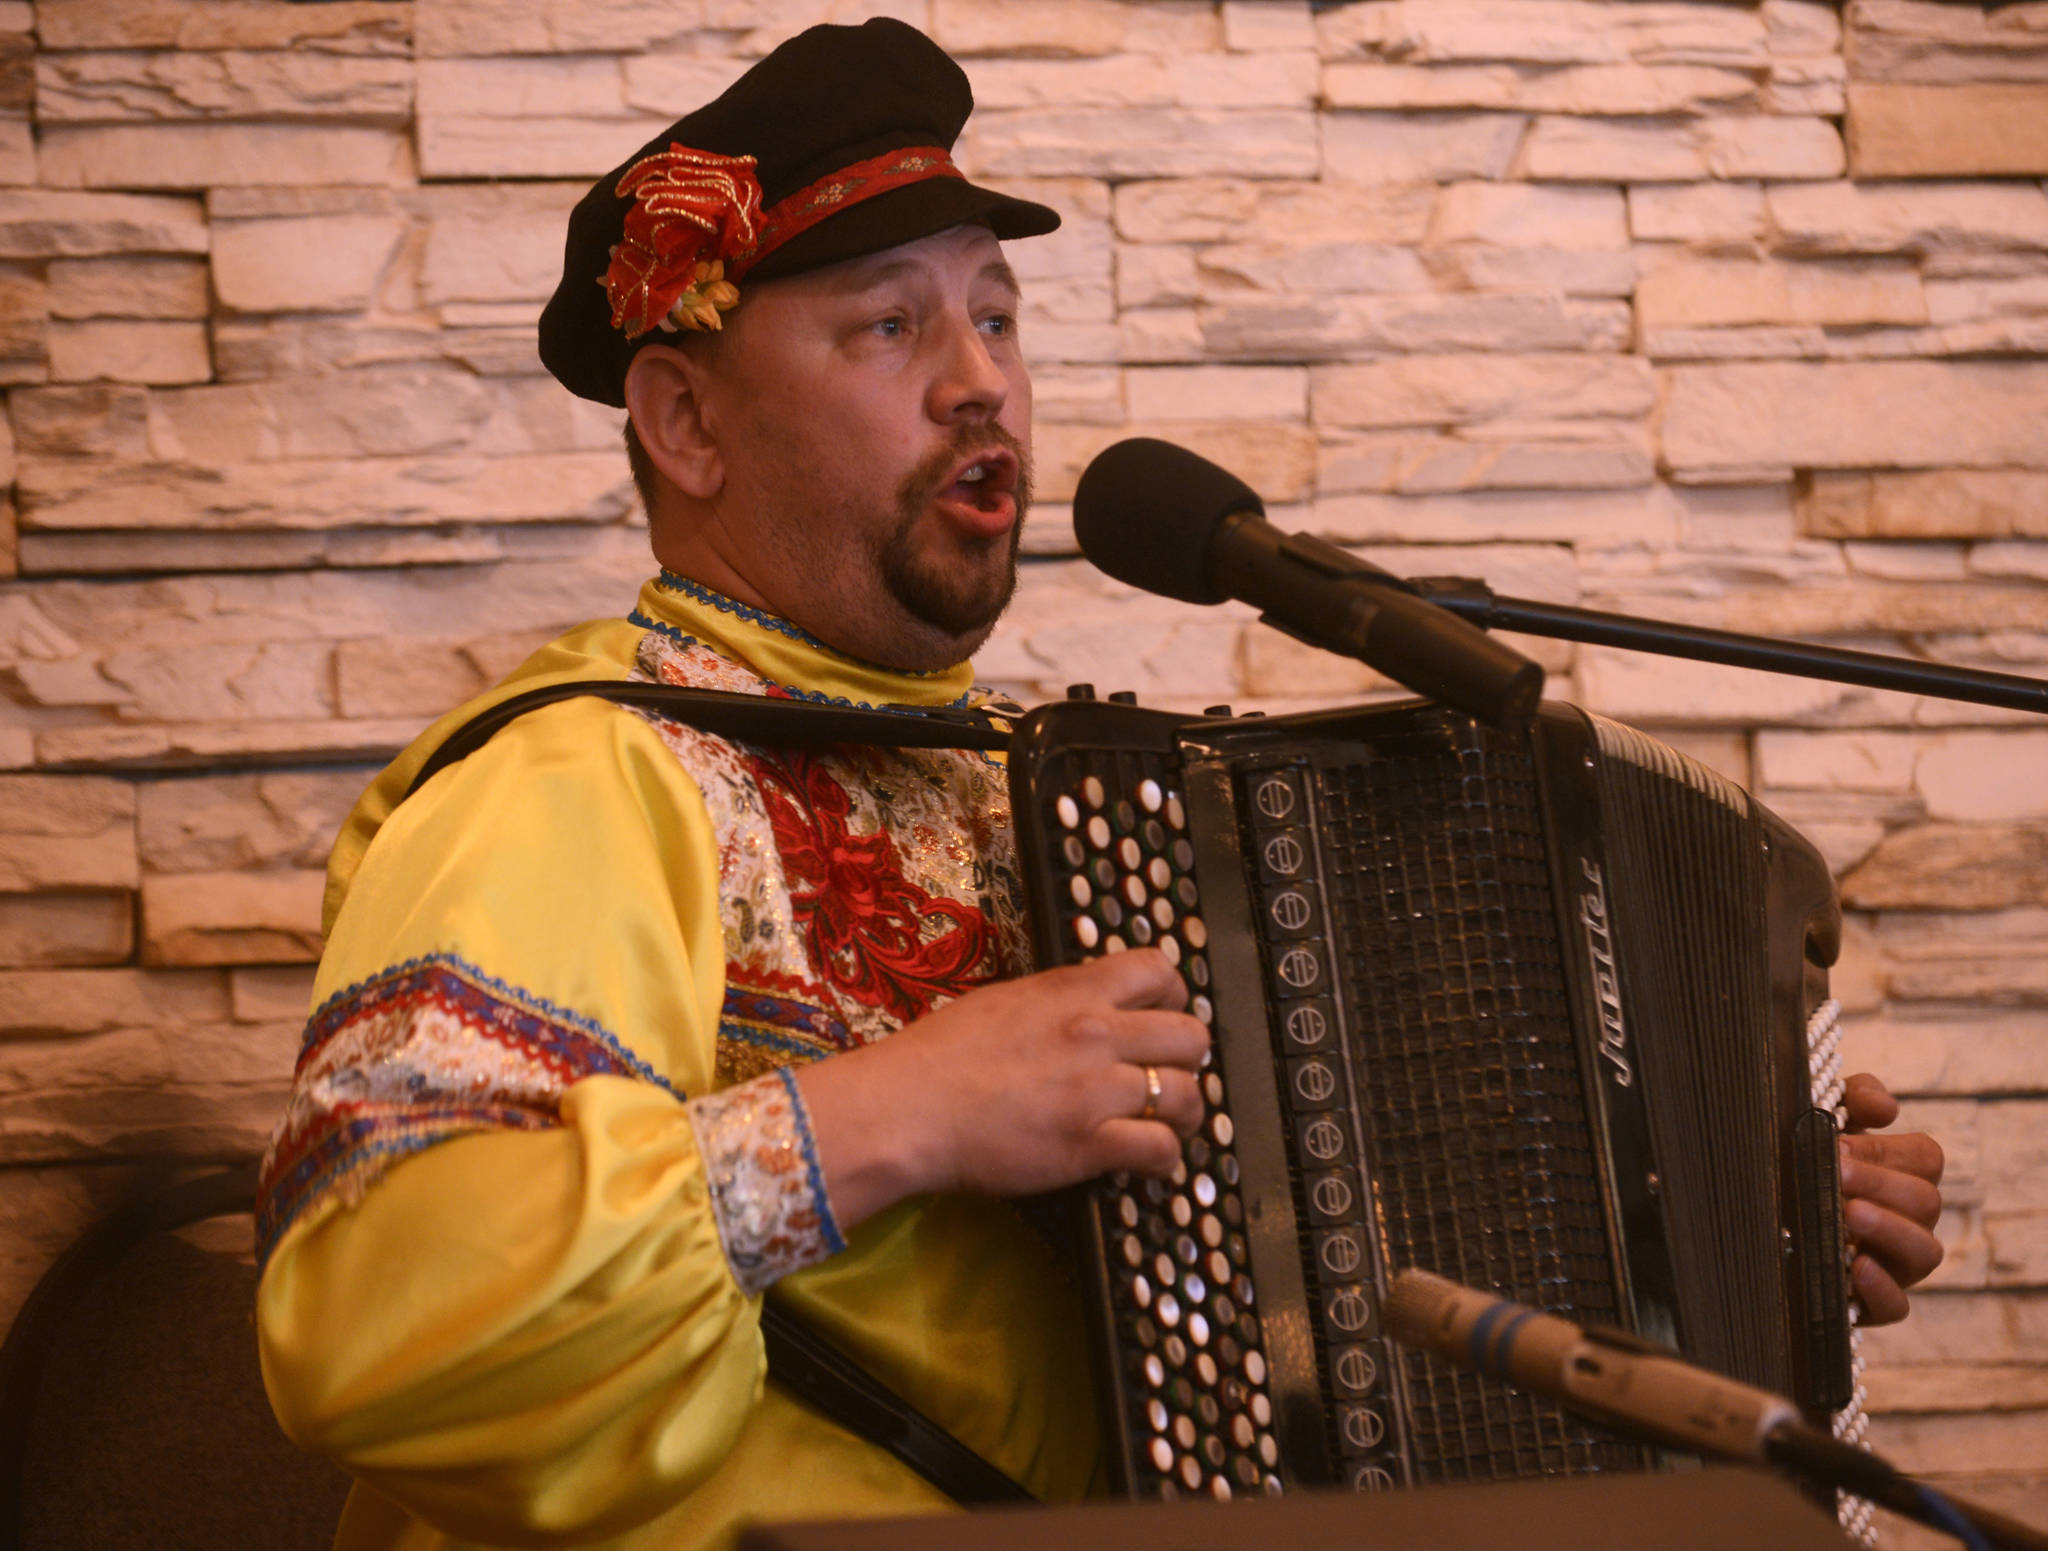 Yuri Shishkin of the Russian folk trio Moscow Nights plays the traditional Russian three-stringed balalaika, with bandmate Boris Bezrodnov on the bass version, on Friday, April 21, 2017 at Alaska Christian College near Soldotna, Alaska. With accordionist Vitali Bezrodnov, the group played for attendees at a Kenai Peninsula History Conference held on the 150th anniversary of Russia's 1867 sale of Alaska to the United States. (Ben Boettger/Peninsula Clarion)